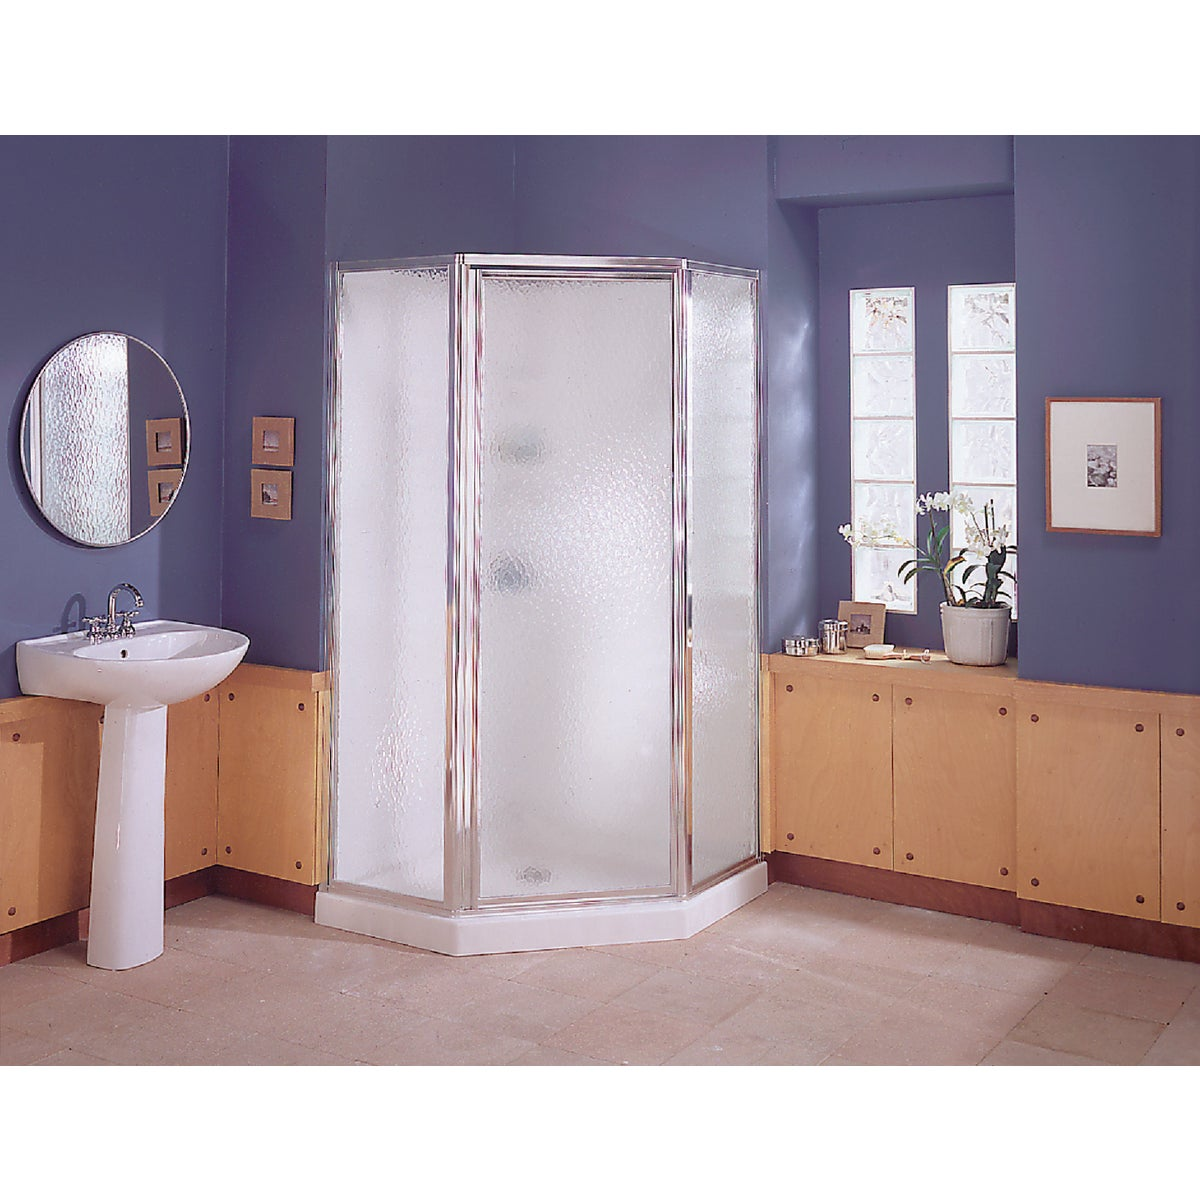 NEO-ANGLE SHOWER SYSTEM - NI3190A-38S/W by Sterling Doors